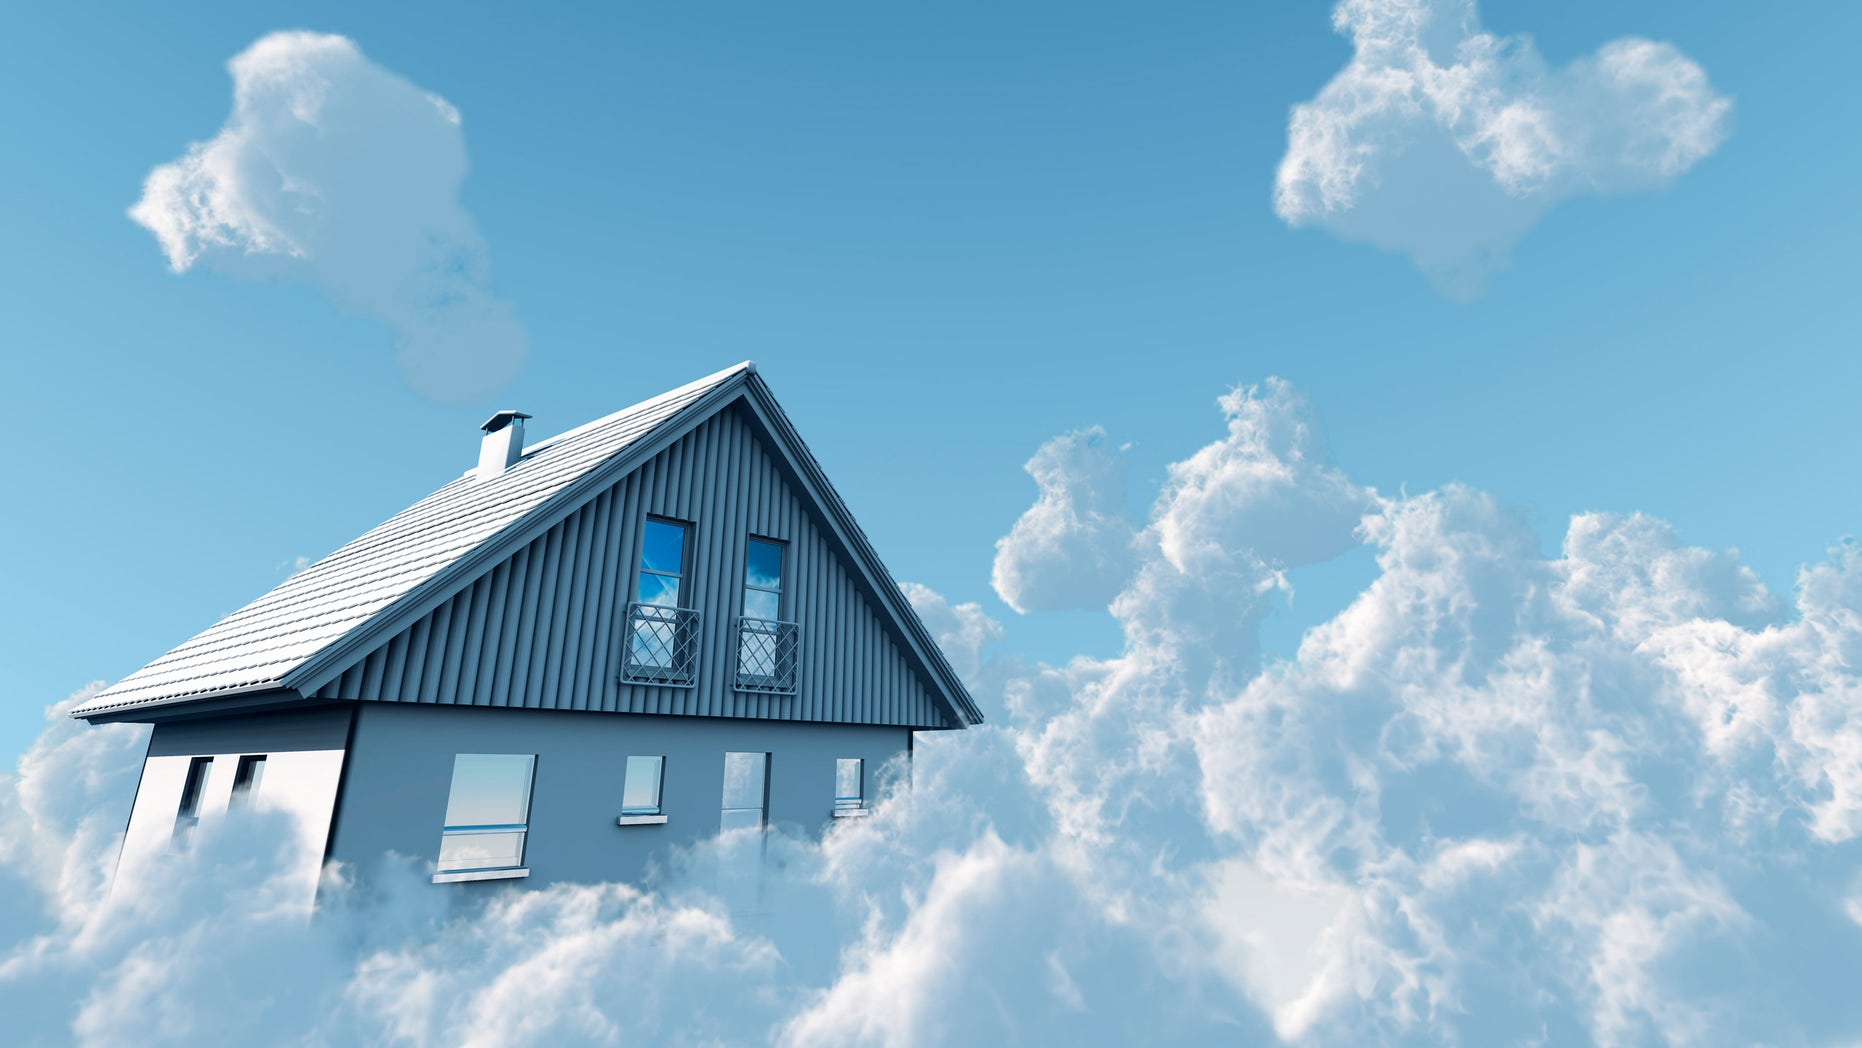 dream home in clouds